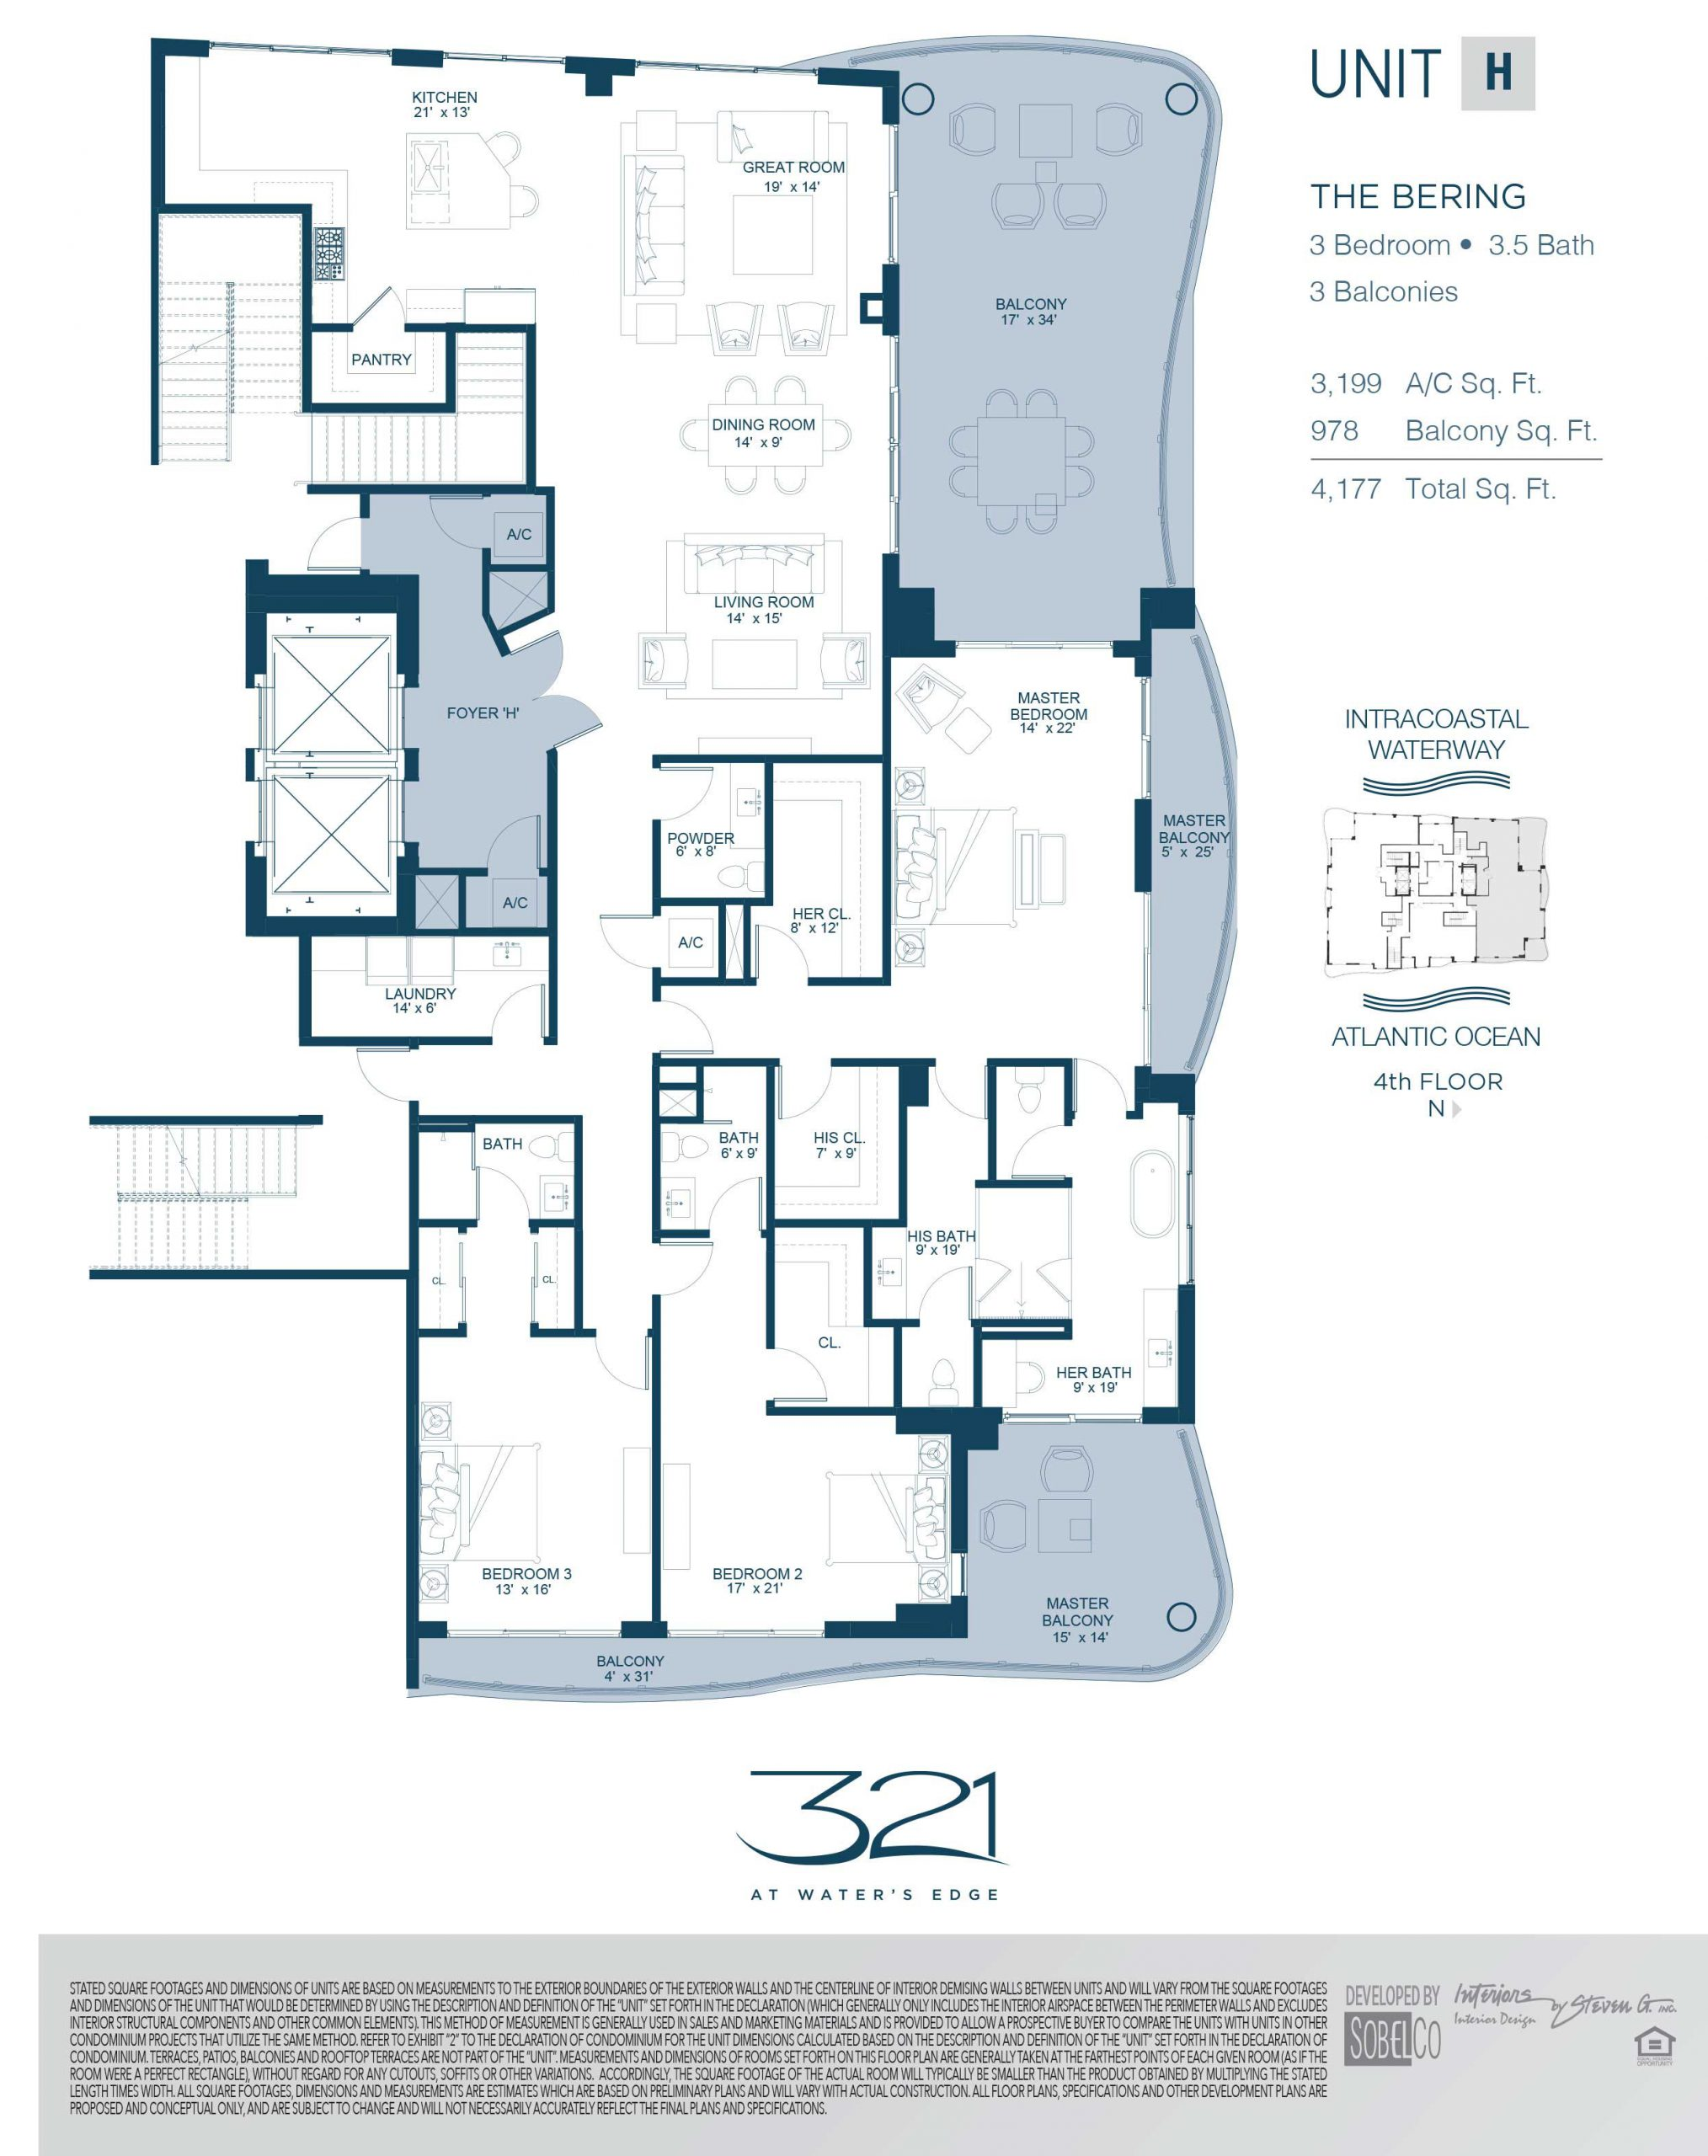 321 At Waters Edge Floor Plans Unit H